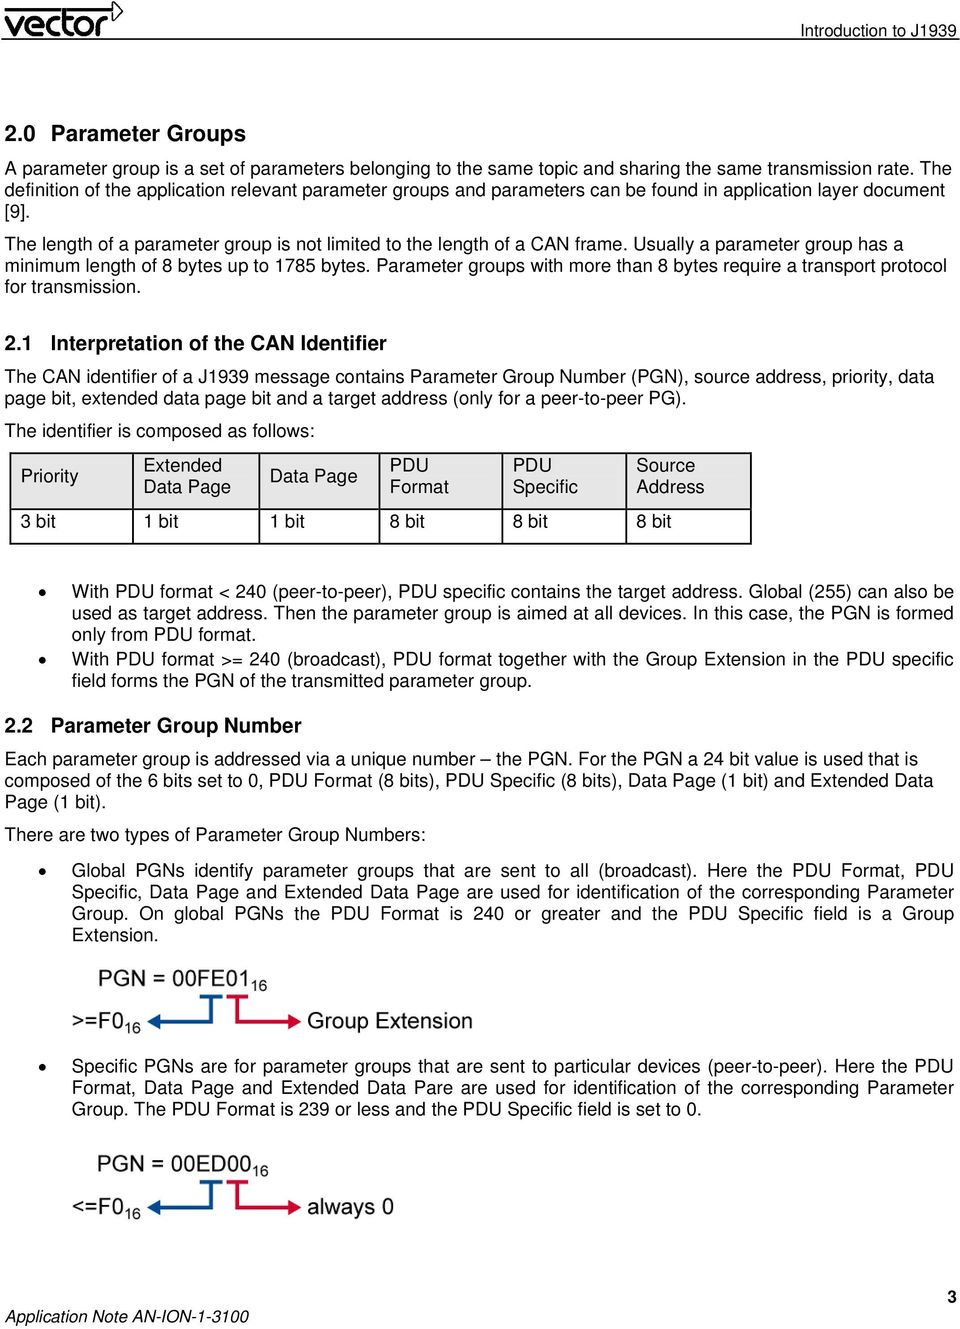 Introduction to J1939 Version Application Note AN-ION - PDF